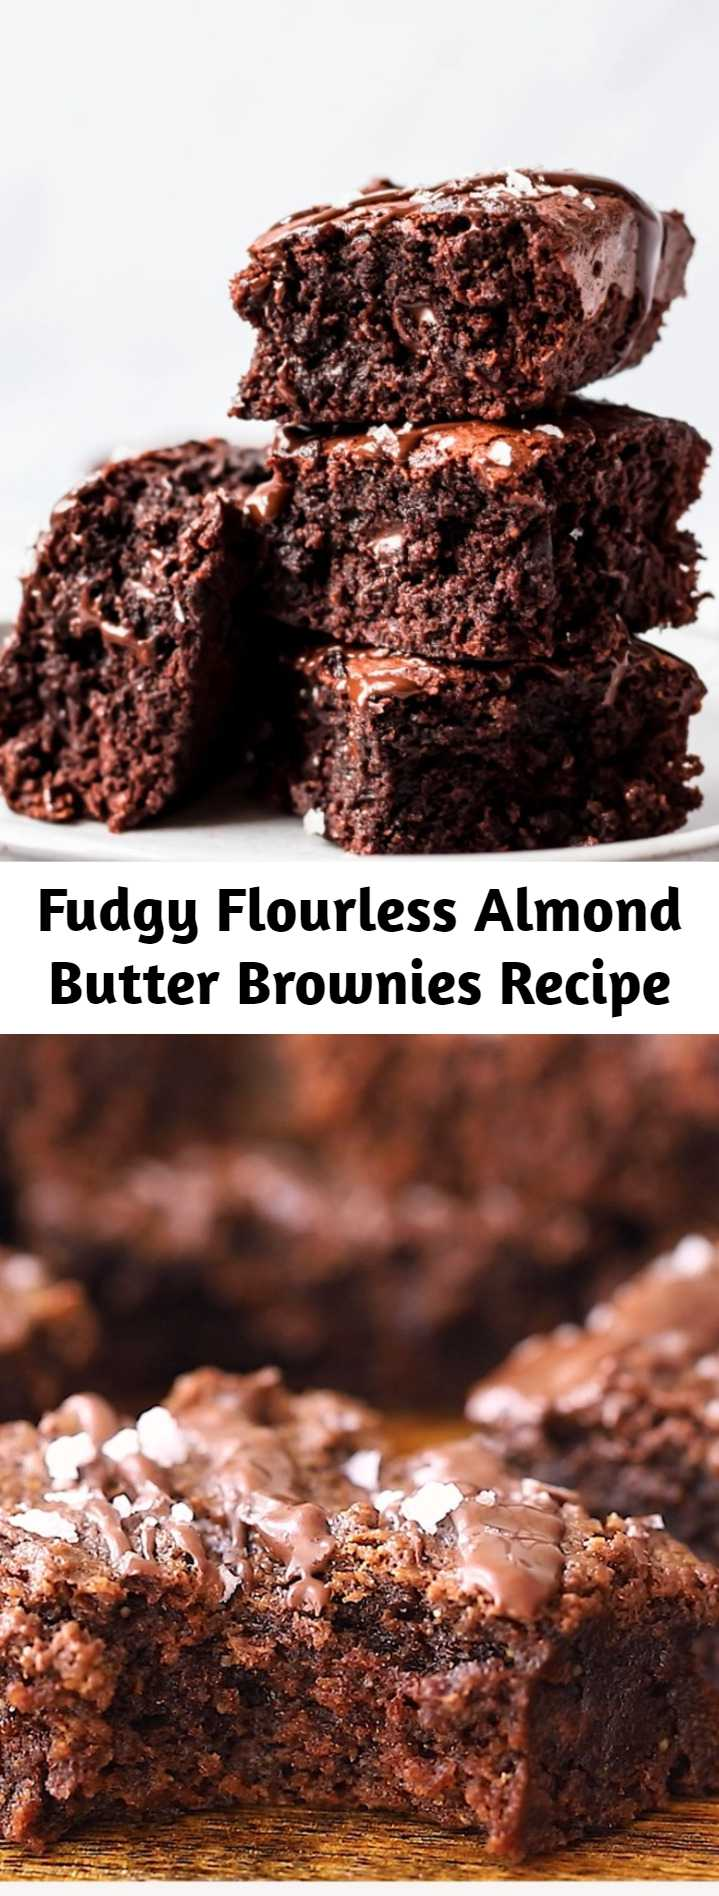 Fudgy Flourless Almond Butter Brownies Recipe (Gluten Free + Dairy Free) - One of the best gluten free brownie recipes on the internet. Fudgy, flourless almond butter brownies made with simple ingredients like natural creamy almond butter, pure maple syrup, cocoa powder and chocolate chips. Incredible hot from the oven or even straight from the fridge! #glutenfree #brownies #dessert #healthydessert #grainfree #dairyfree #chocolate #chocolaterecipe #baking